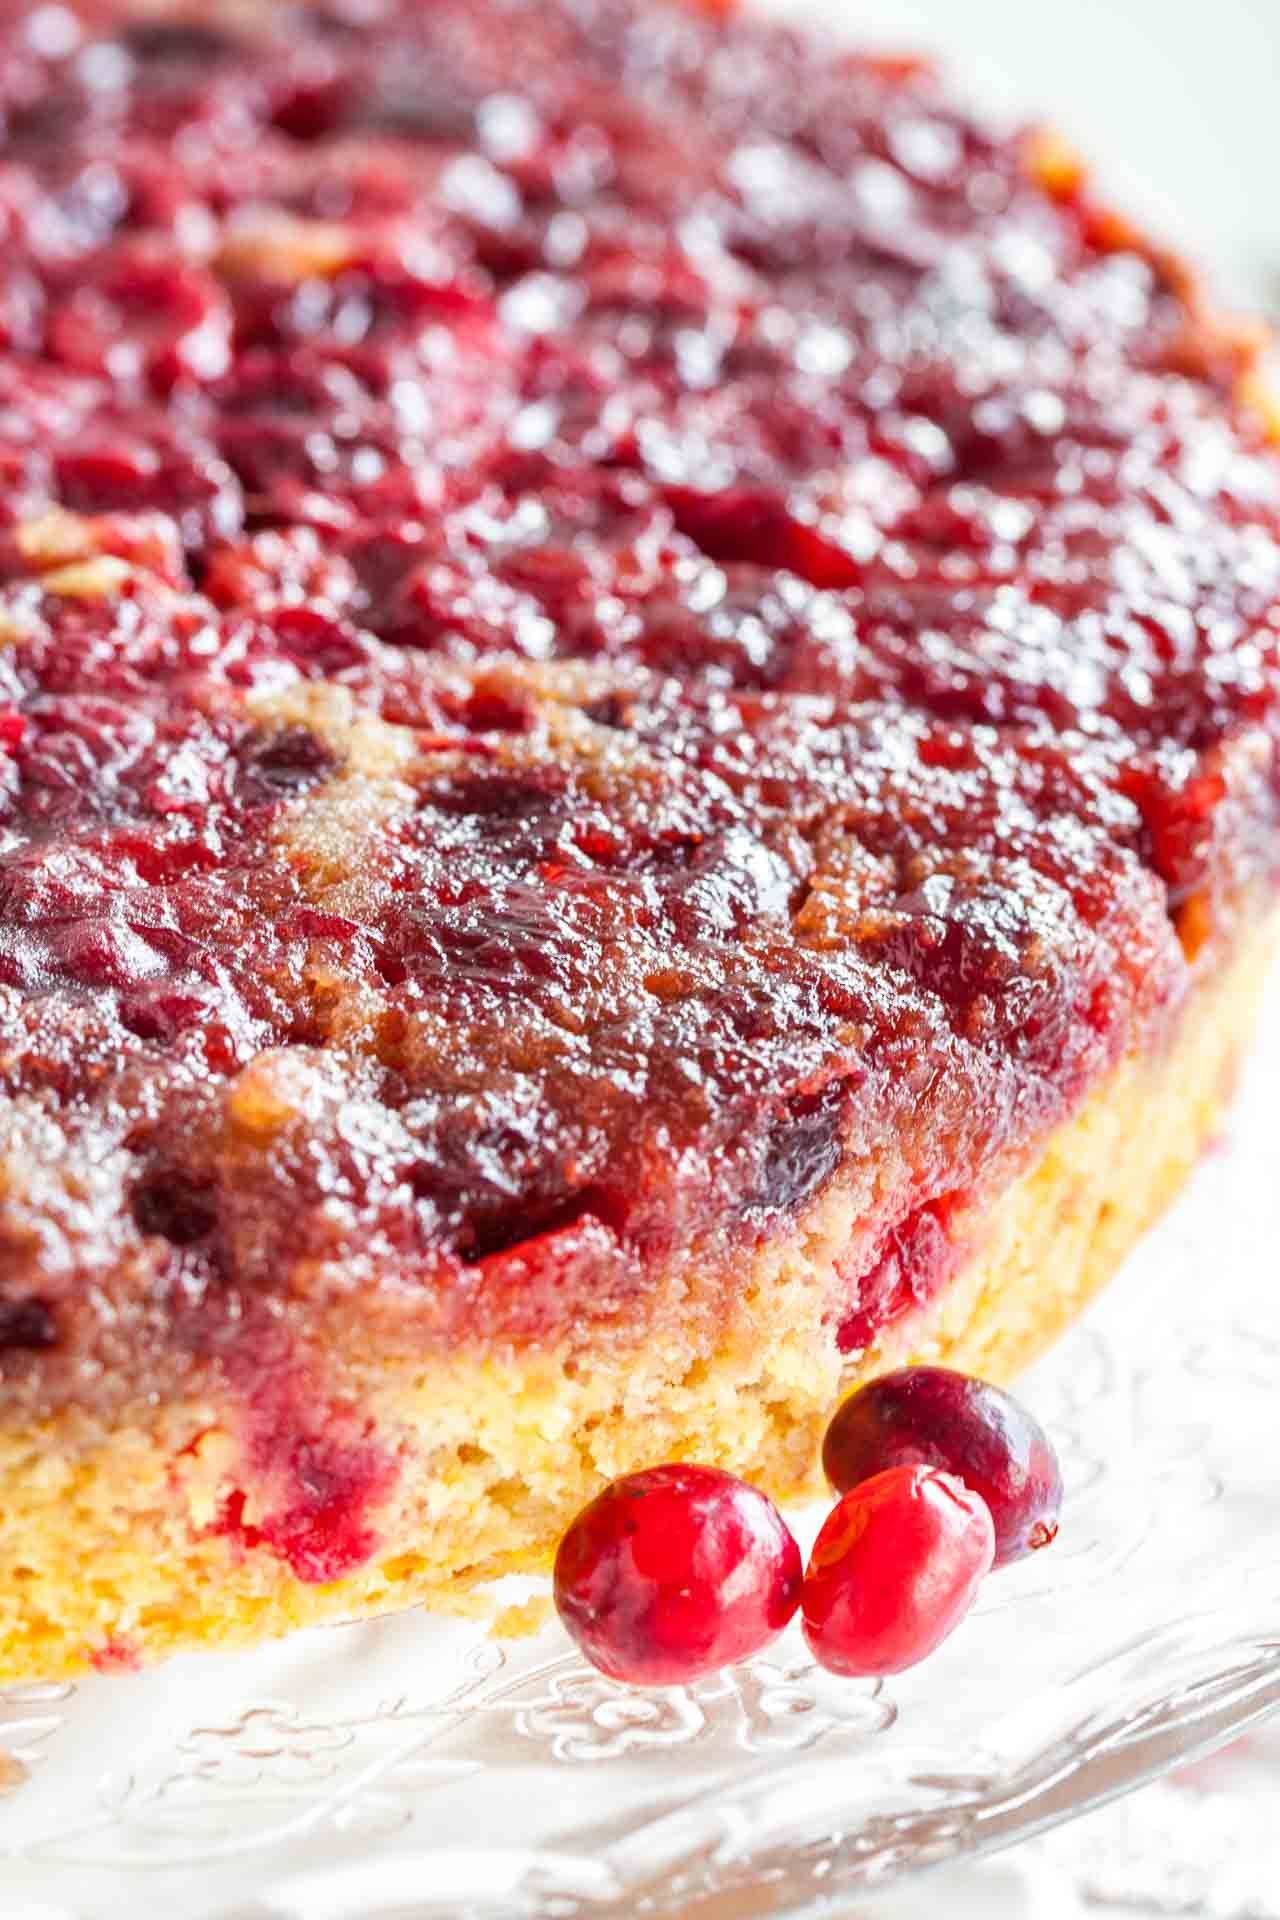 Cranberry Christmas Cake is made with fresh cranberries